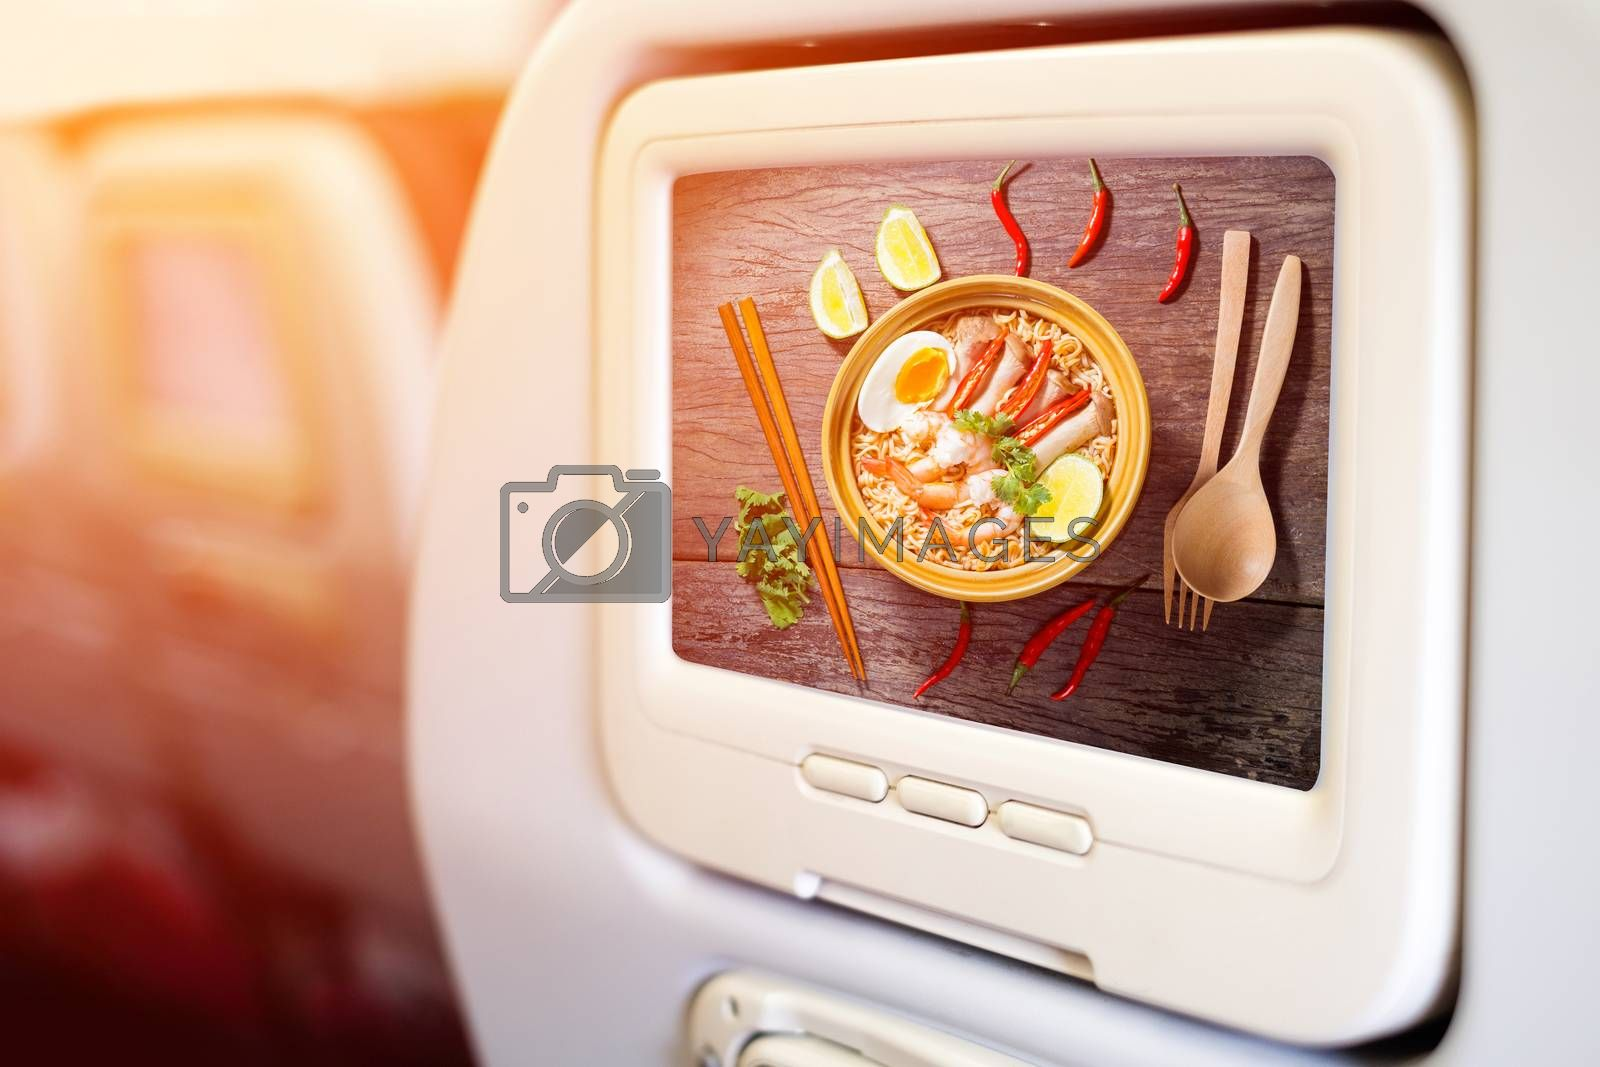 Aircraft monitor in front of passenger seat showing Thai food style noodle, Ma Ma tom yum kung